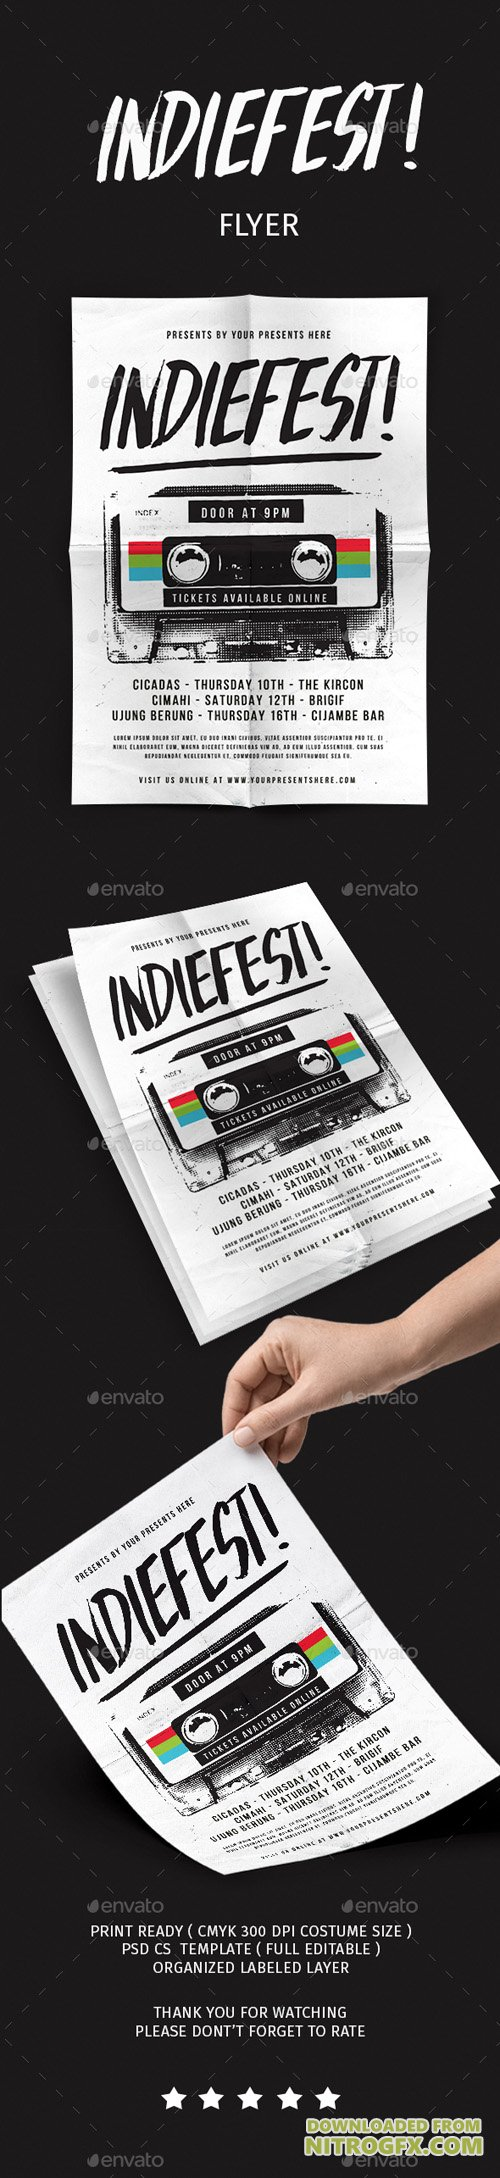 Indiefest Flyer 20645657